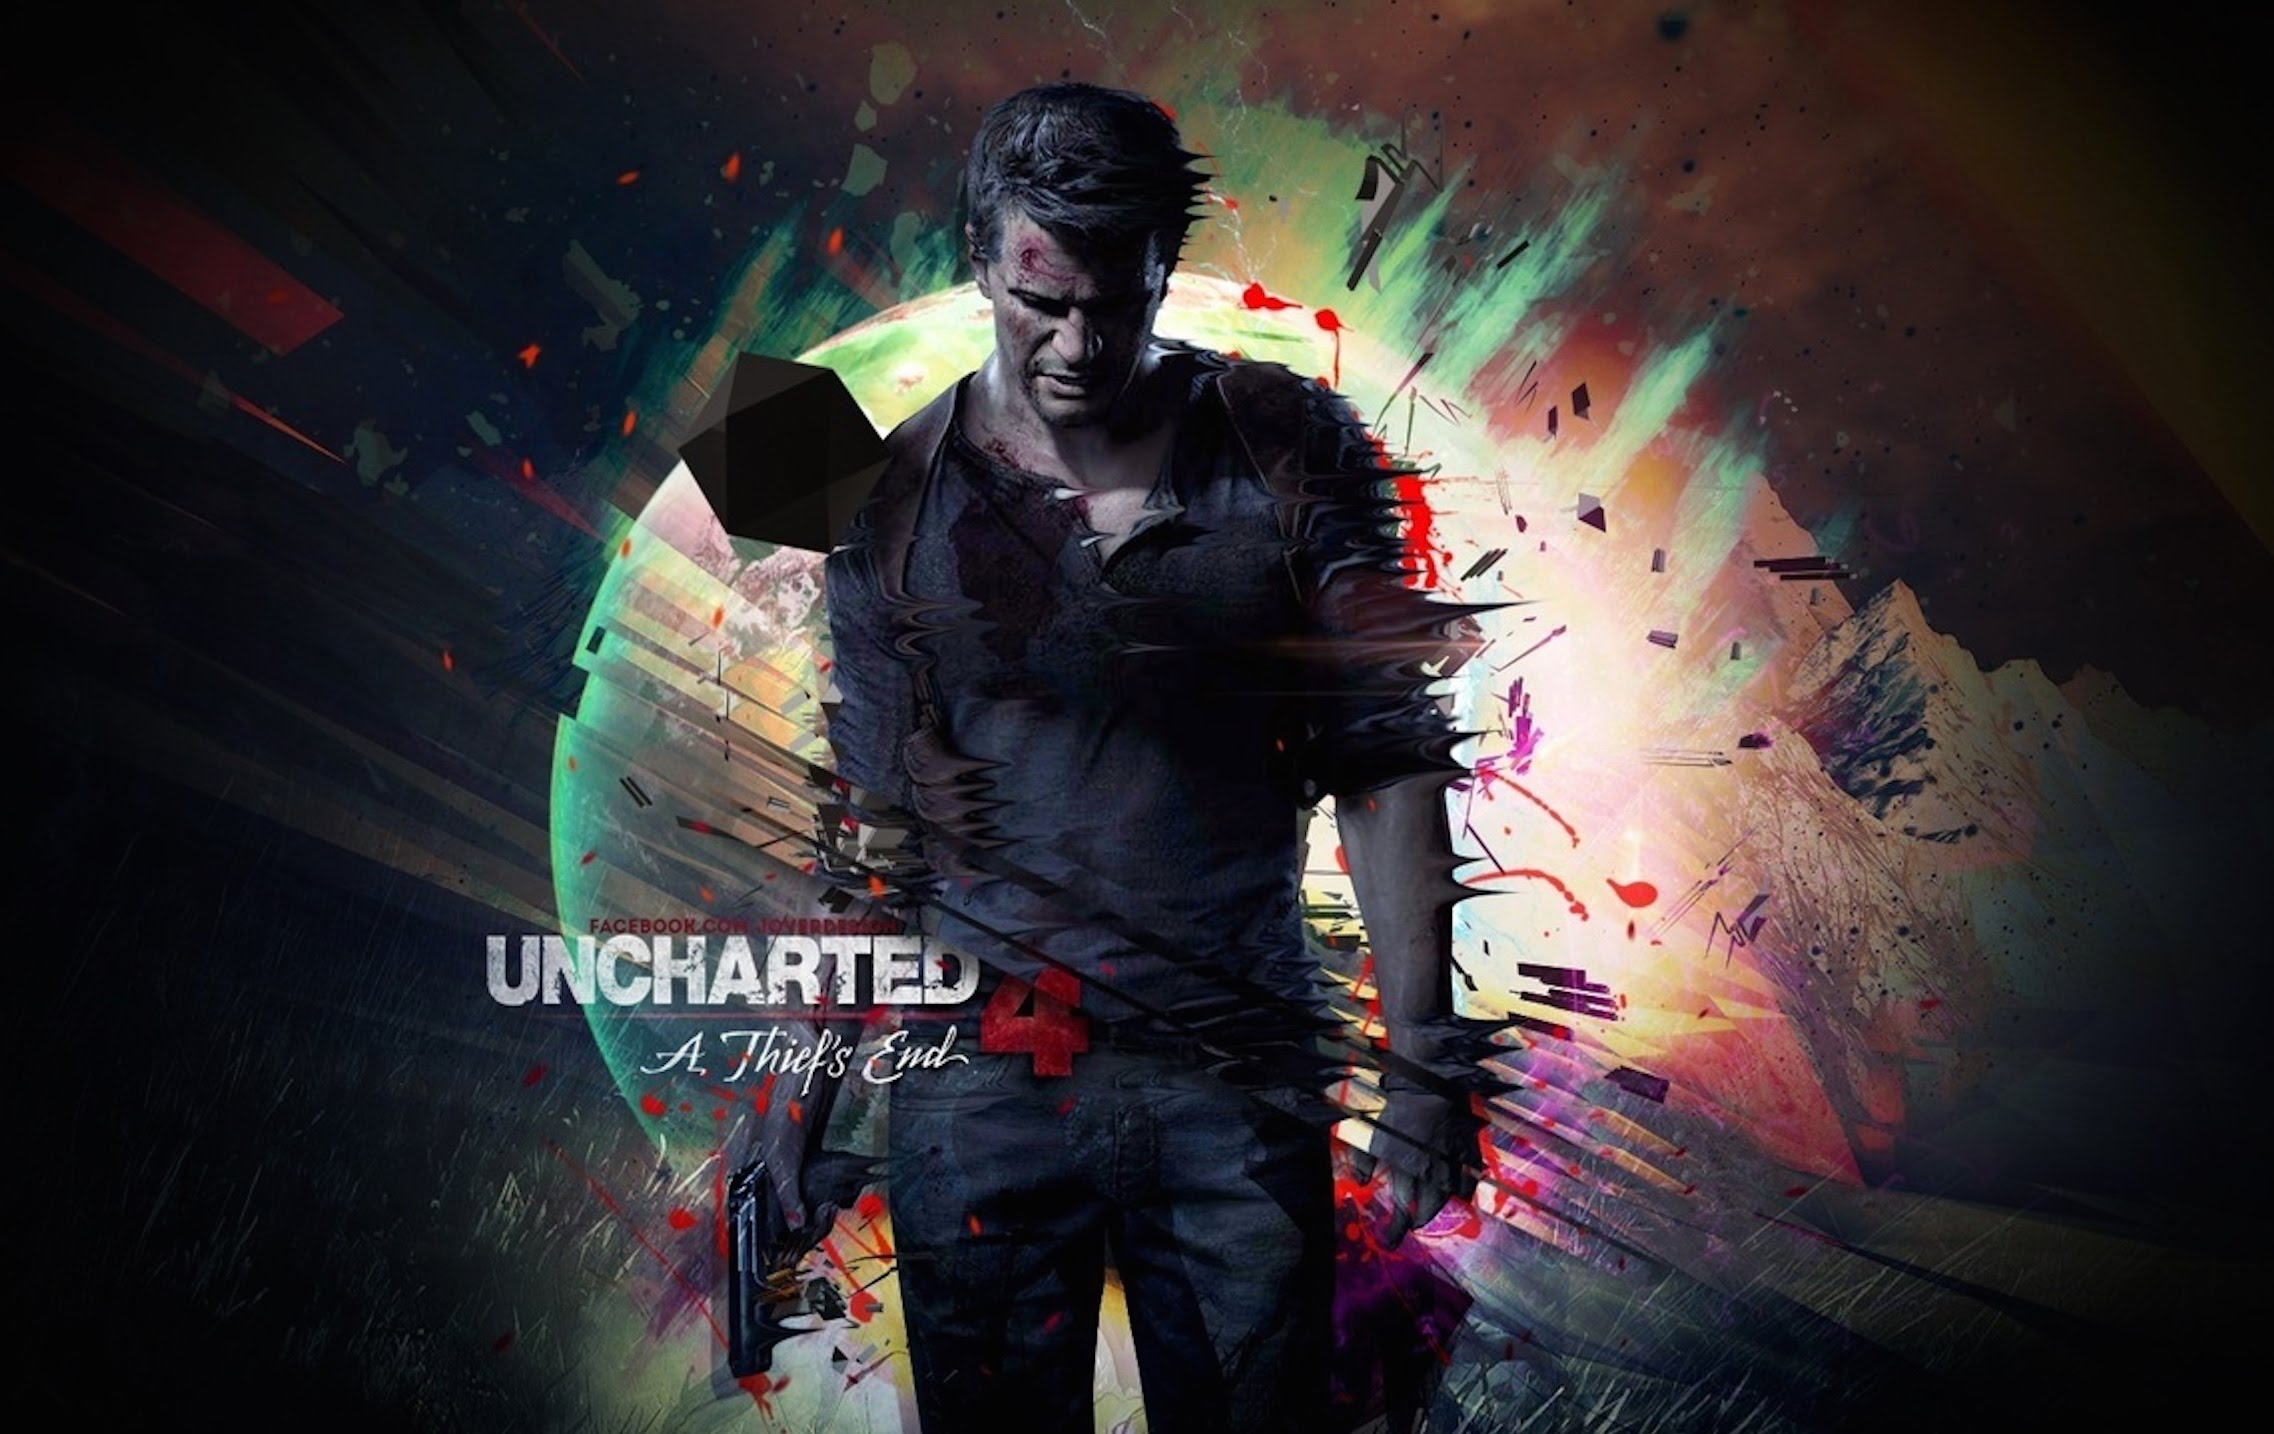 uncharted 4: a thief's end hd wallpapers and screens download free